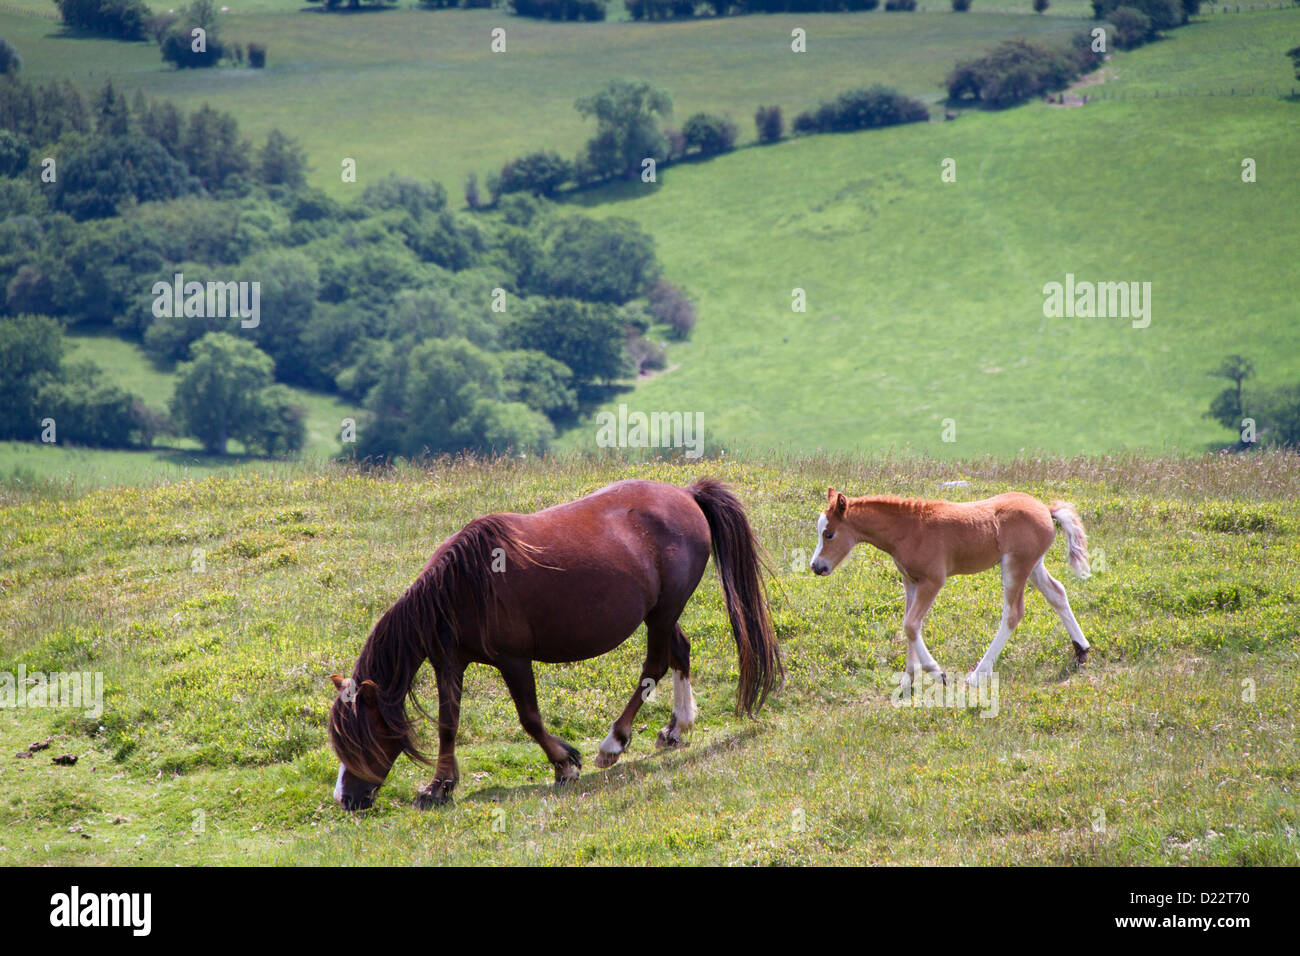 Horse and foul. - Stock Image